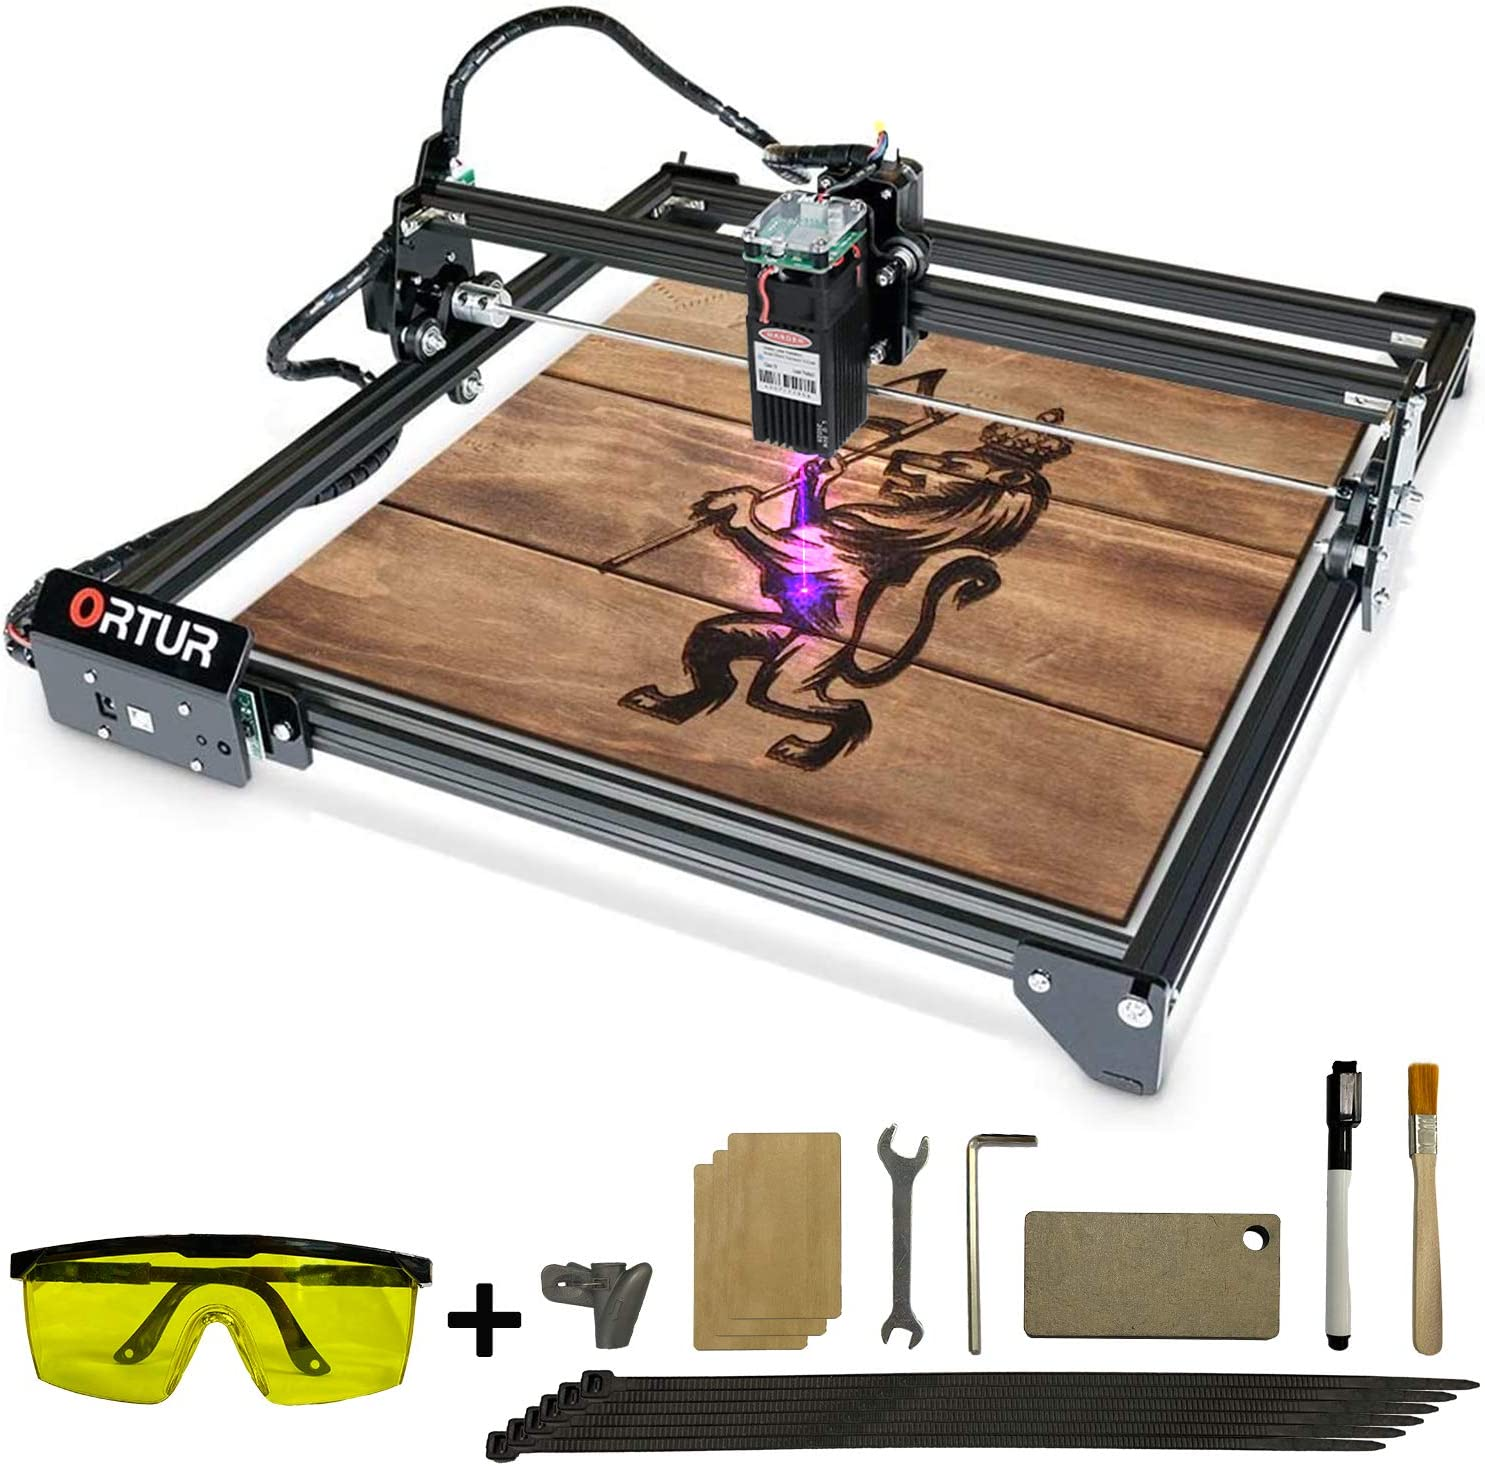 ORTUR Laser Master 2, Laser Engraver CNC, Laser Engraving Cutting Machine, DIY Laser Marking for Metal with 32-bit Motherboard LaserGRBL(LightBurn), 400x430mm Large Engraving Area (20w)